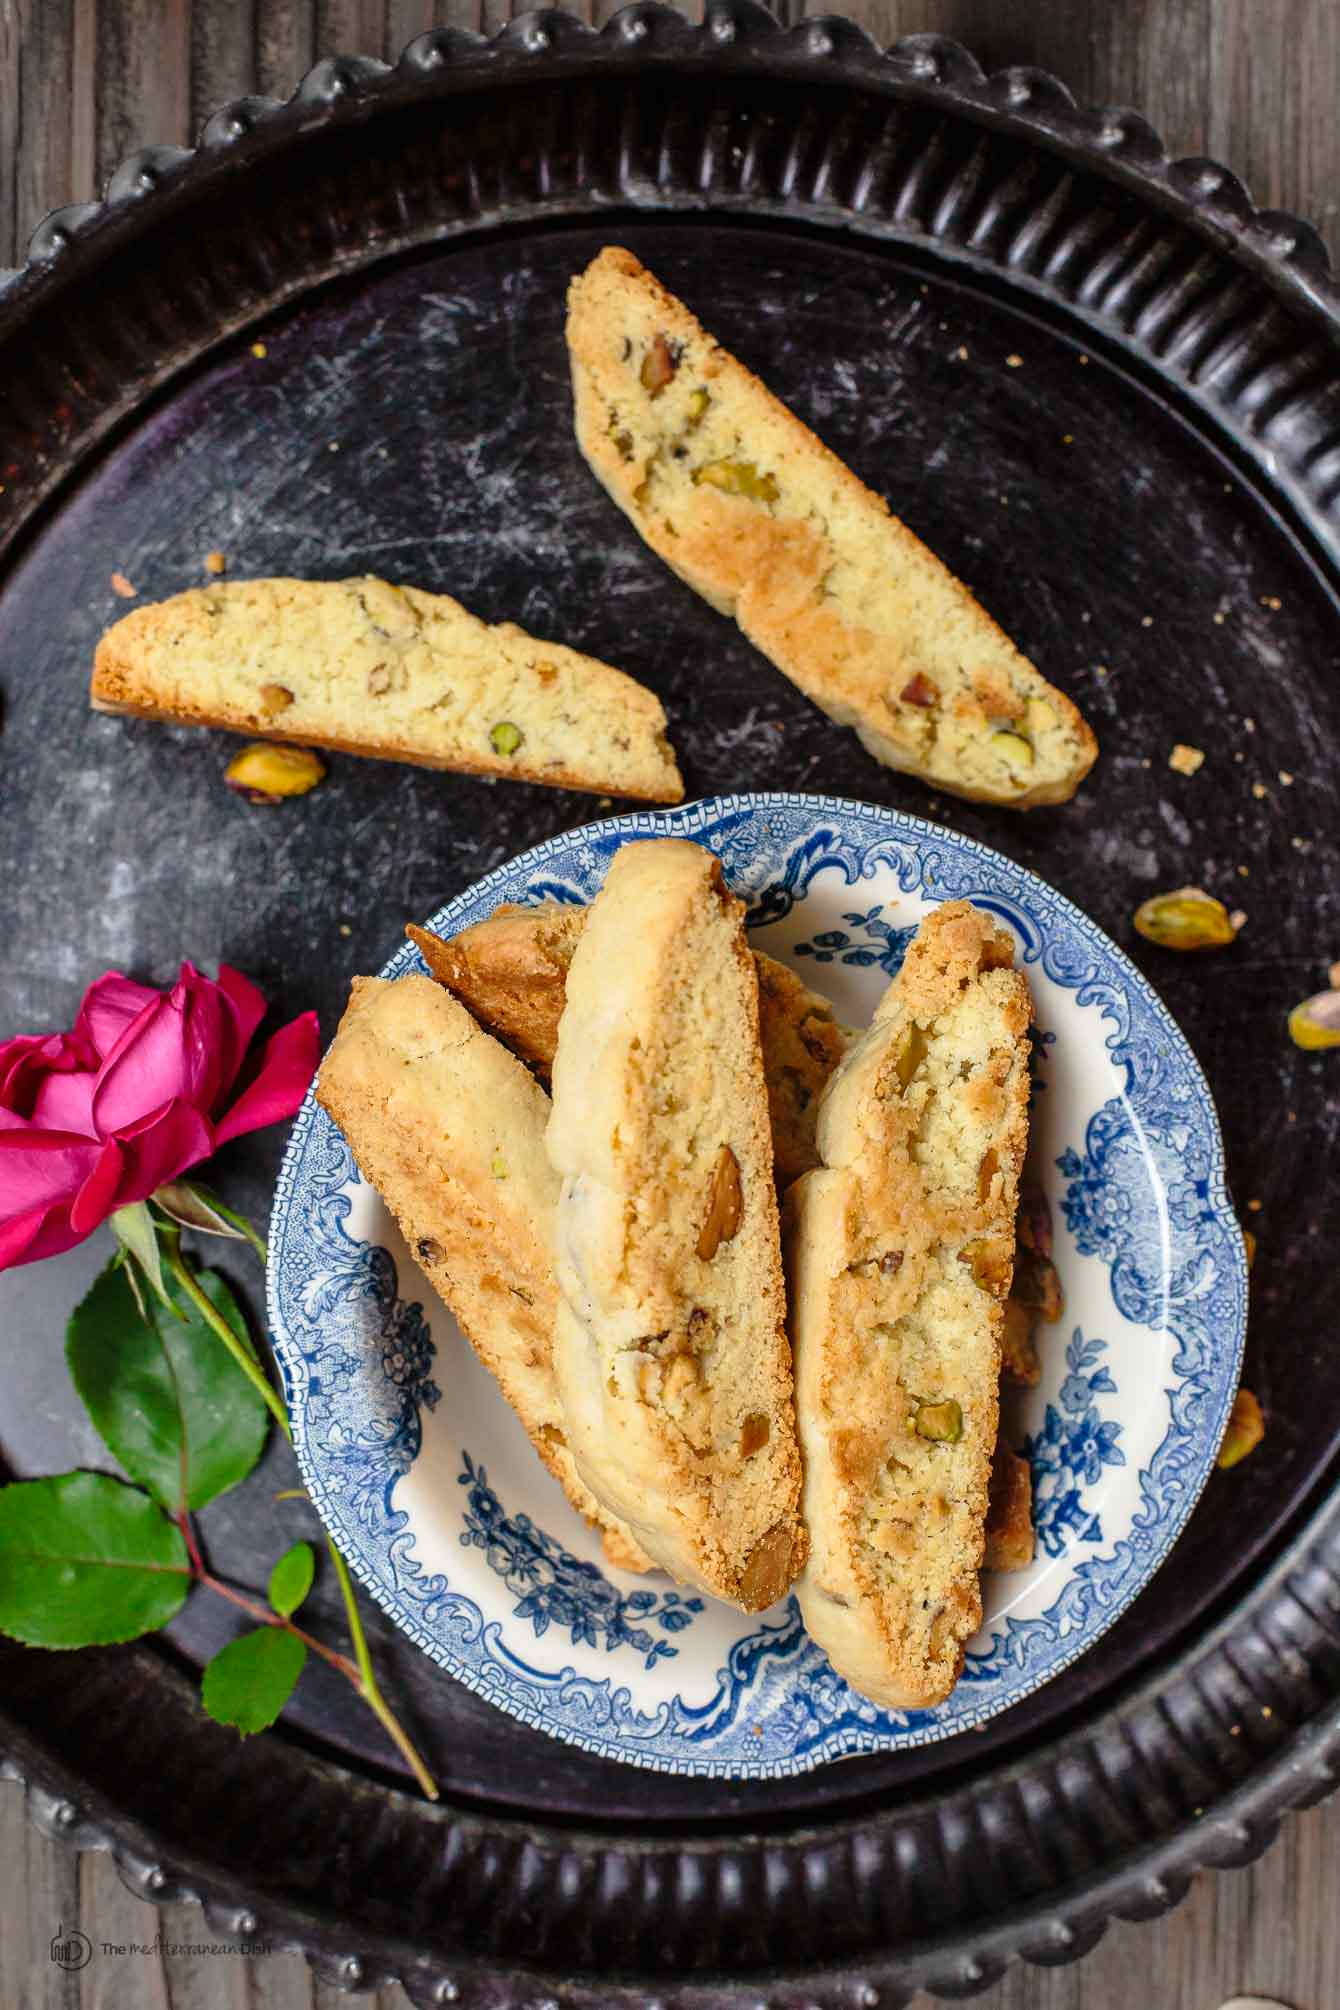 Easy Biscotti Recipe with Pistachios and Cardamom | The Mediterranean Dish. As Italian biscotti should always be, dense, textured, and perfectly crunchy. Get the tips and full recipe on TheMediterraneanDish.com